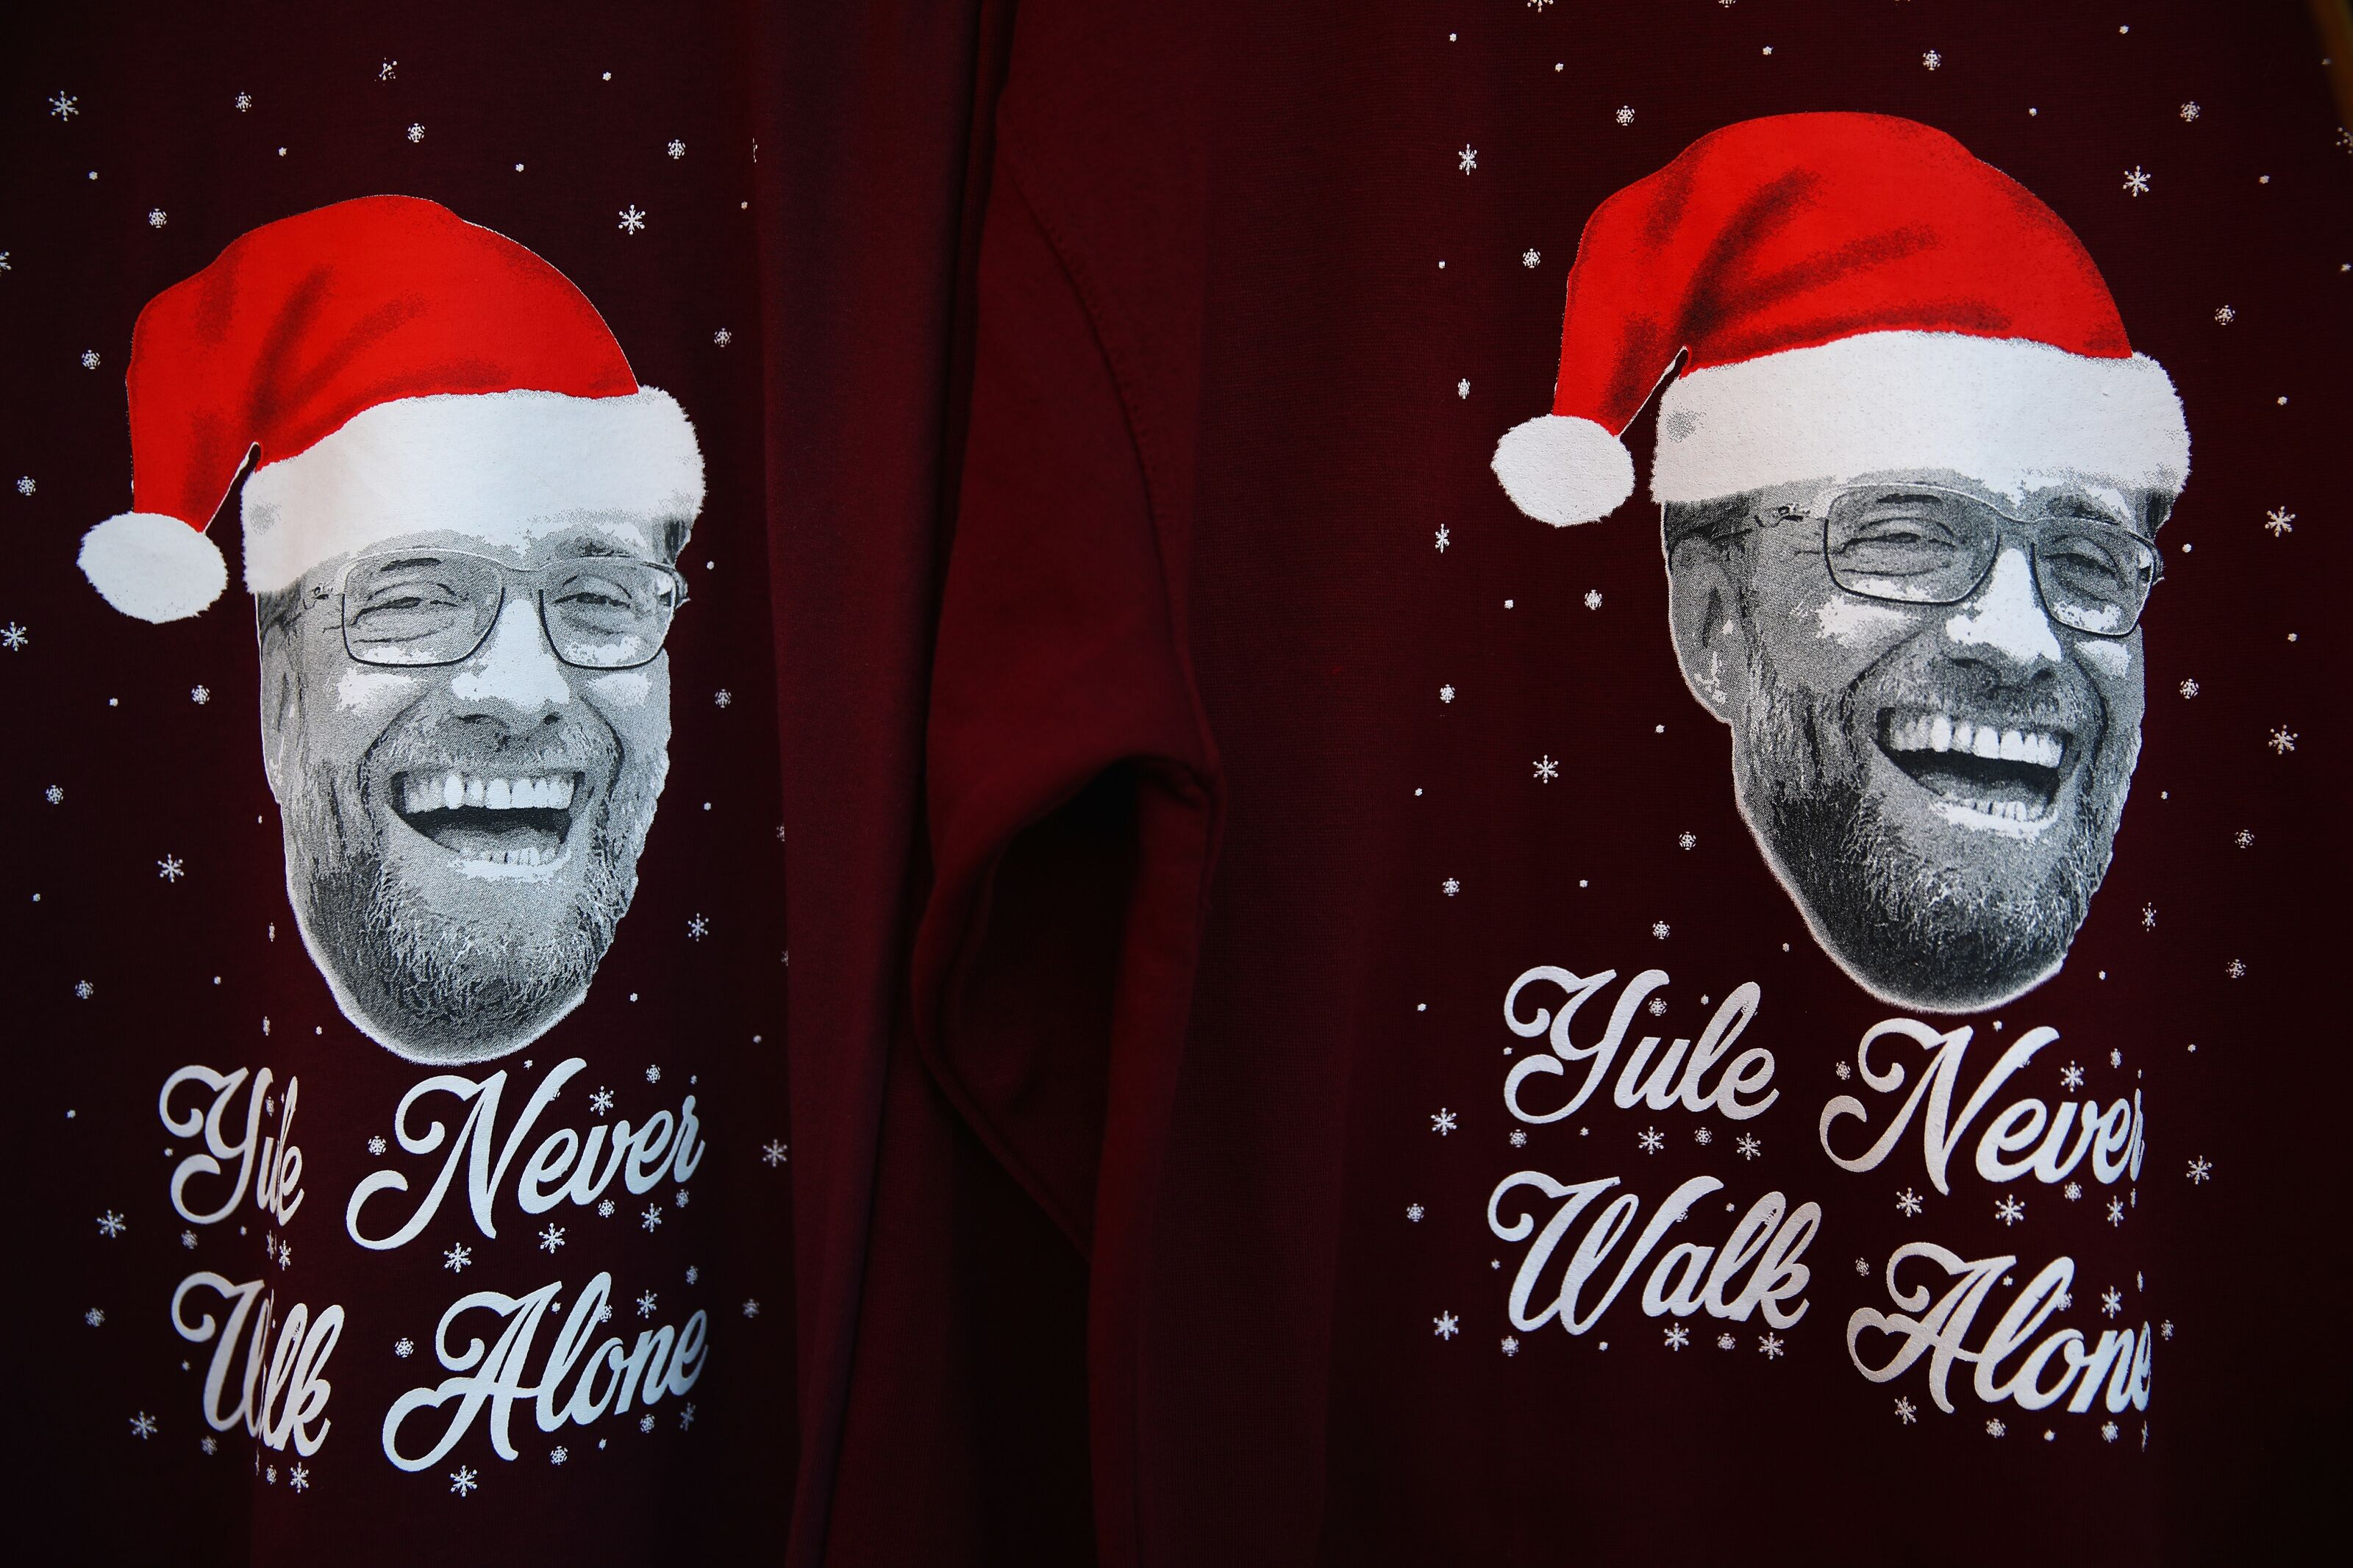 Has the Kop created a new Christmas no. 1?